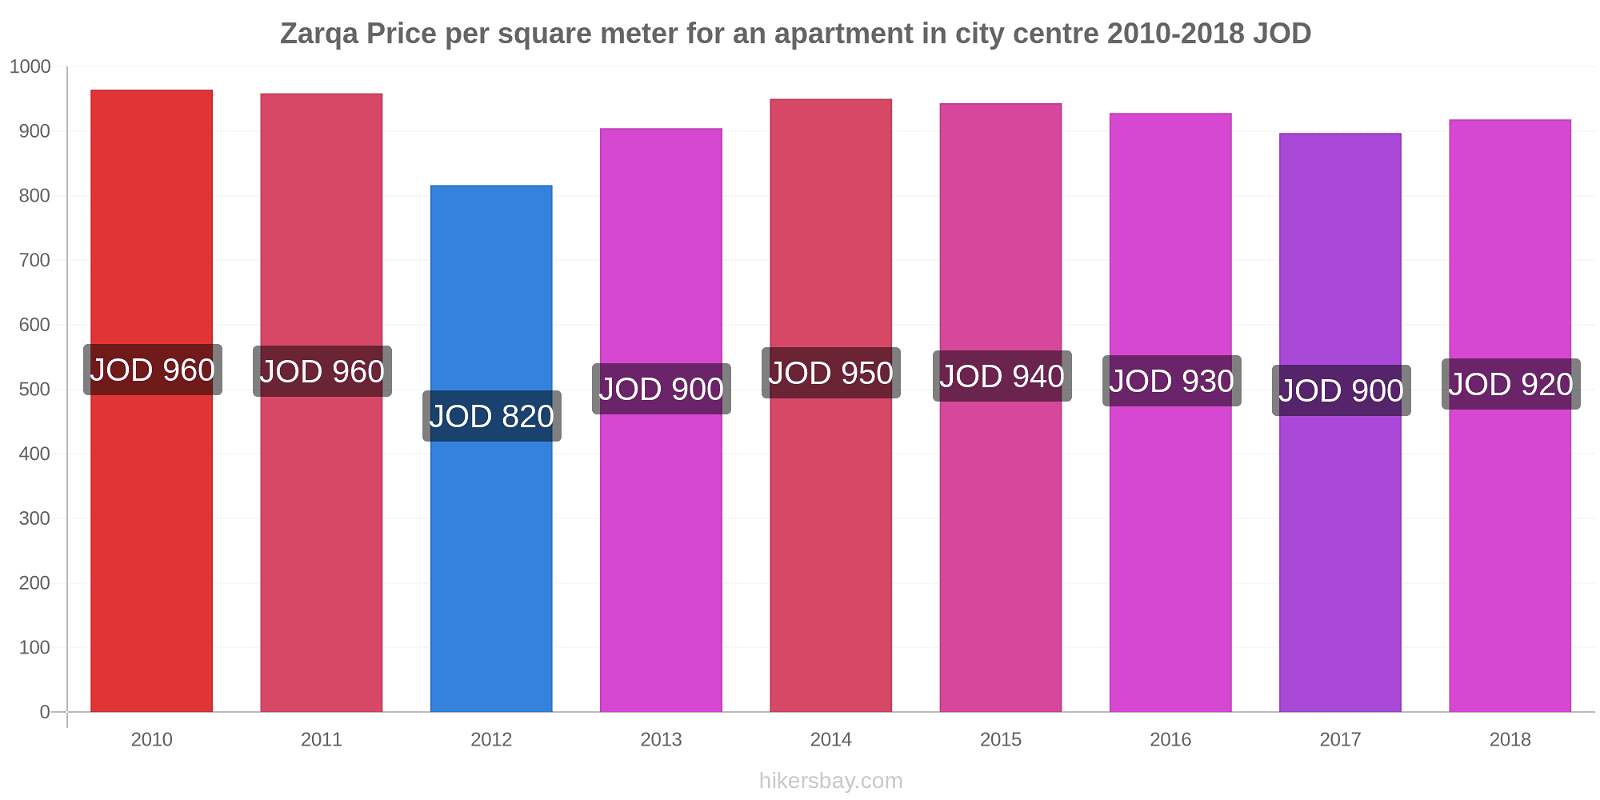 Zarqa price changes Price per square meter for an apartment in city centre hikersbay.com